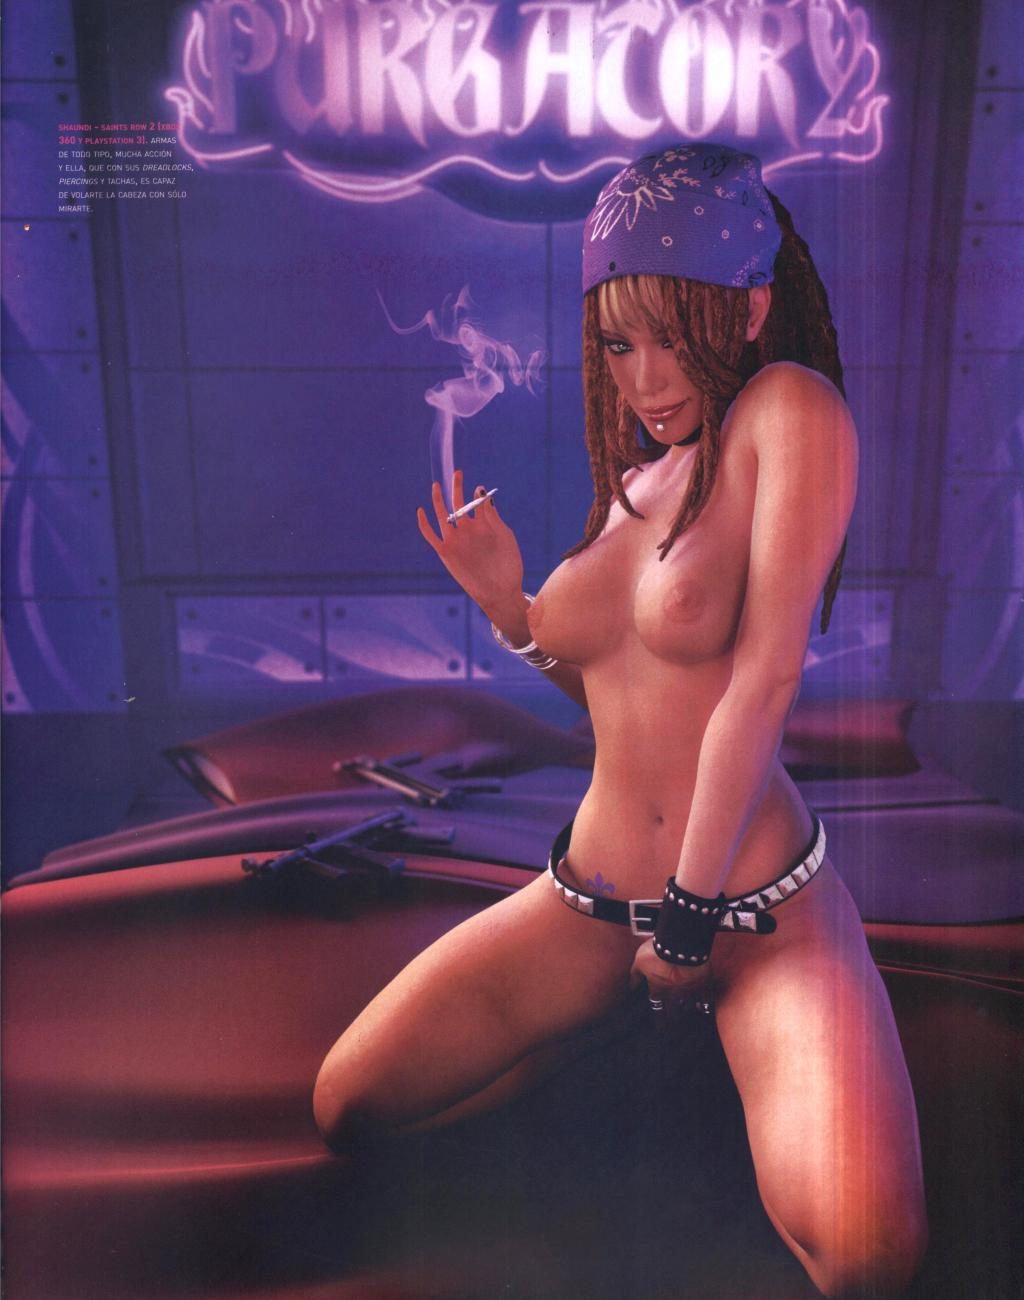 Saint row footjob naked images